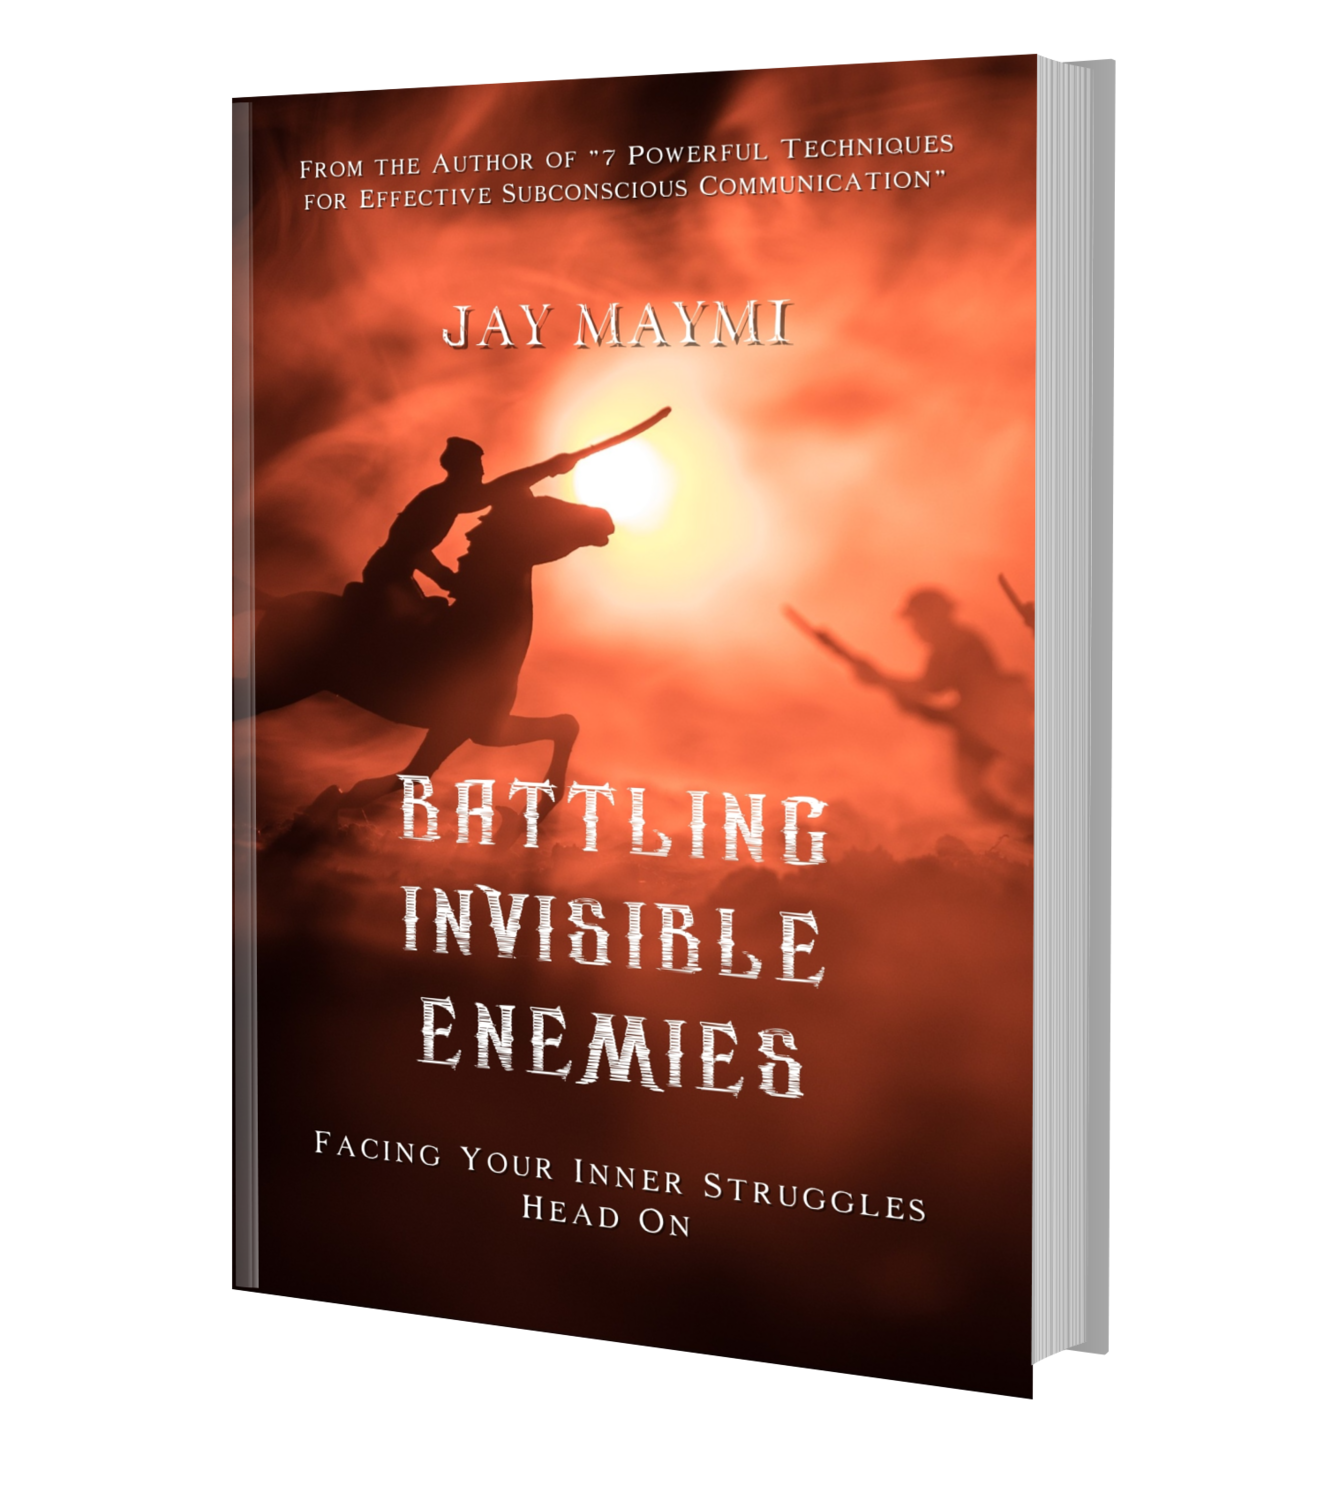 BATTLING INVISIBLE ENEMIES (SOFTCOVER) ORDER NOW!